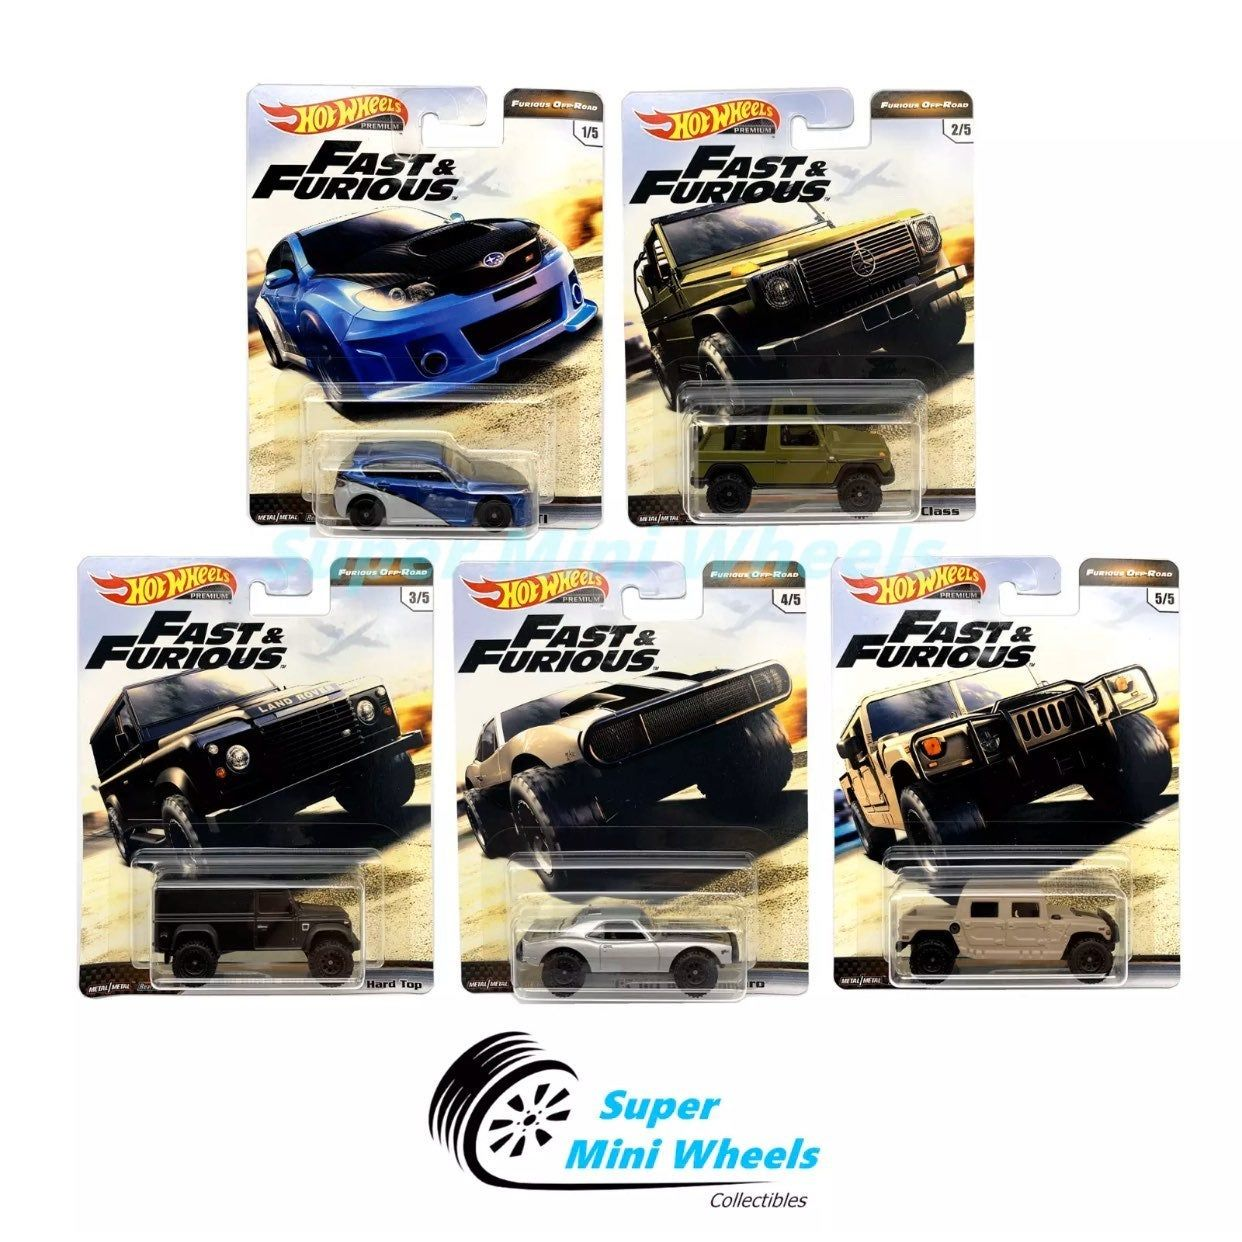 2019 Hot Wheels 1//64 Fast and Furious 5 Cars Pack 1//64 Diecast Model Cars